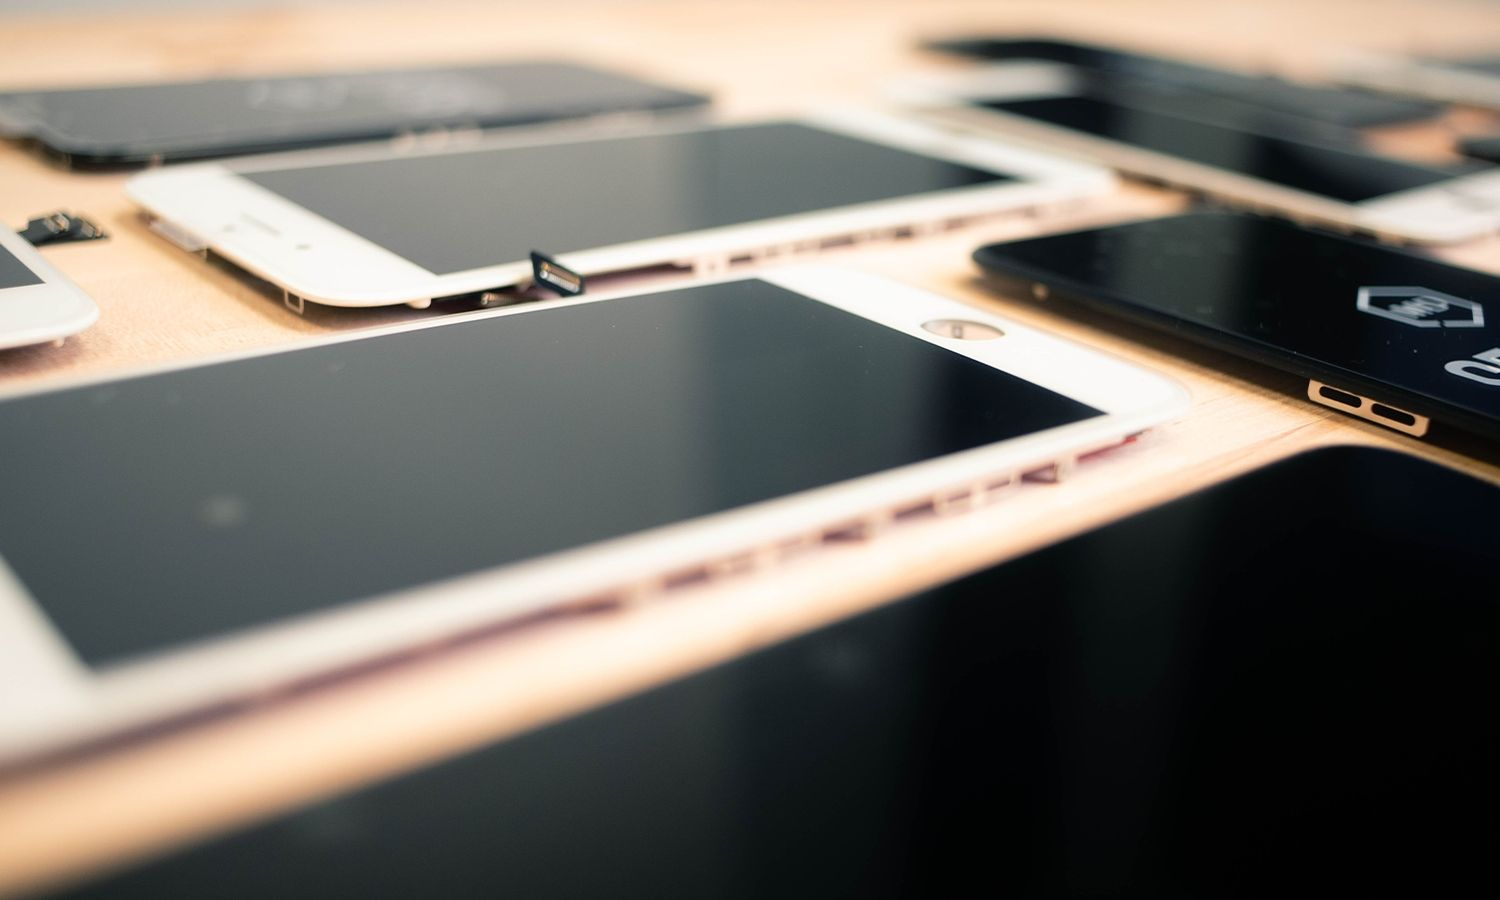 Replacement screens for iPhones arranged on a table. High-quality replacement parts available at Mobile Defenders.